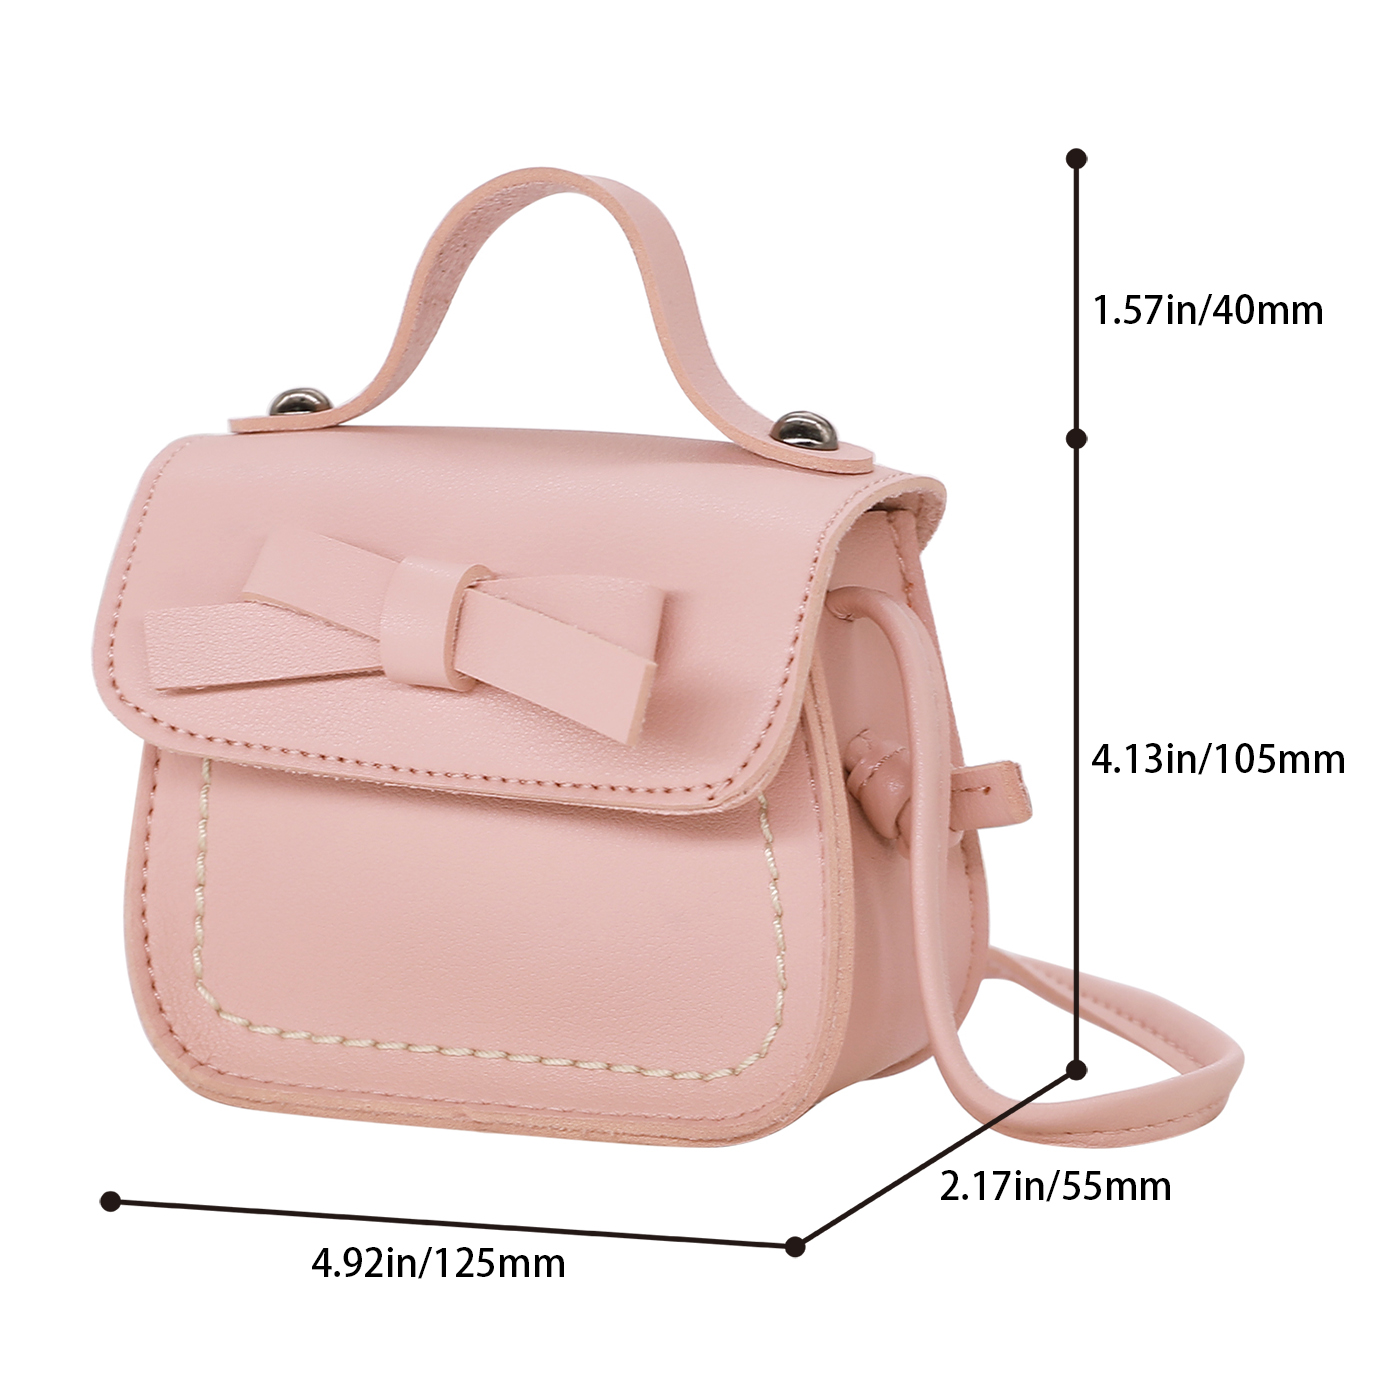 HDE Small Fashion Purse for Little Girls